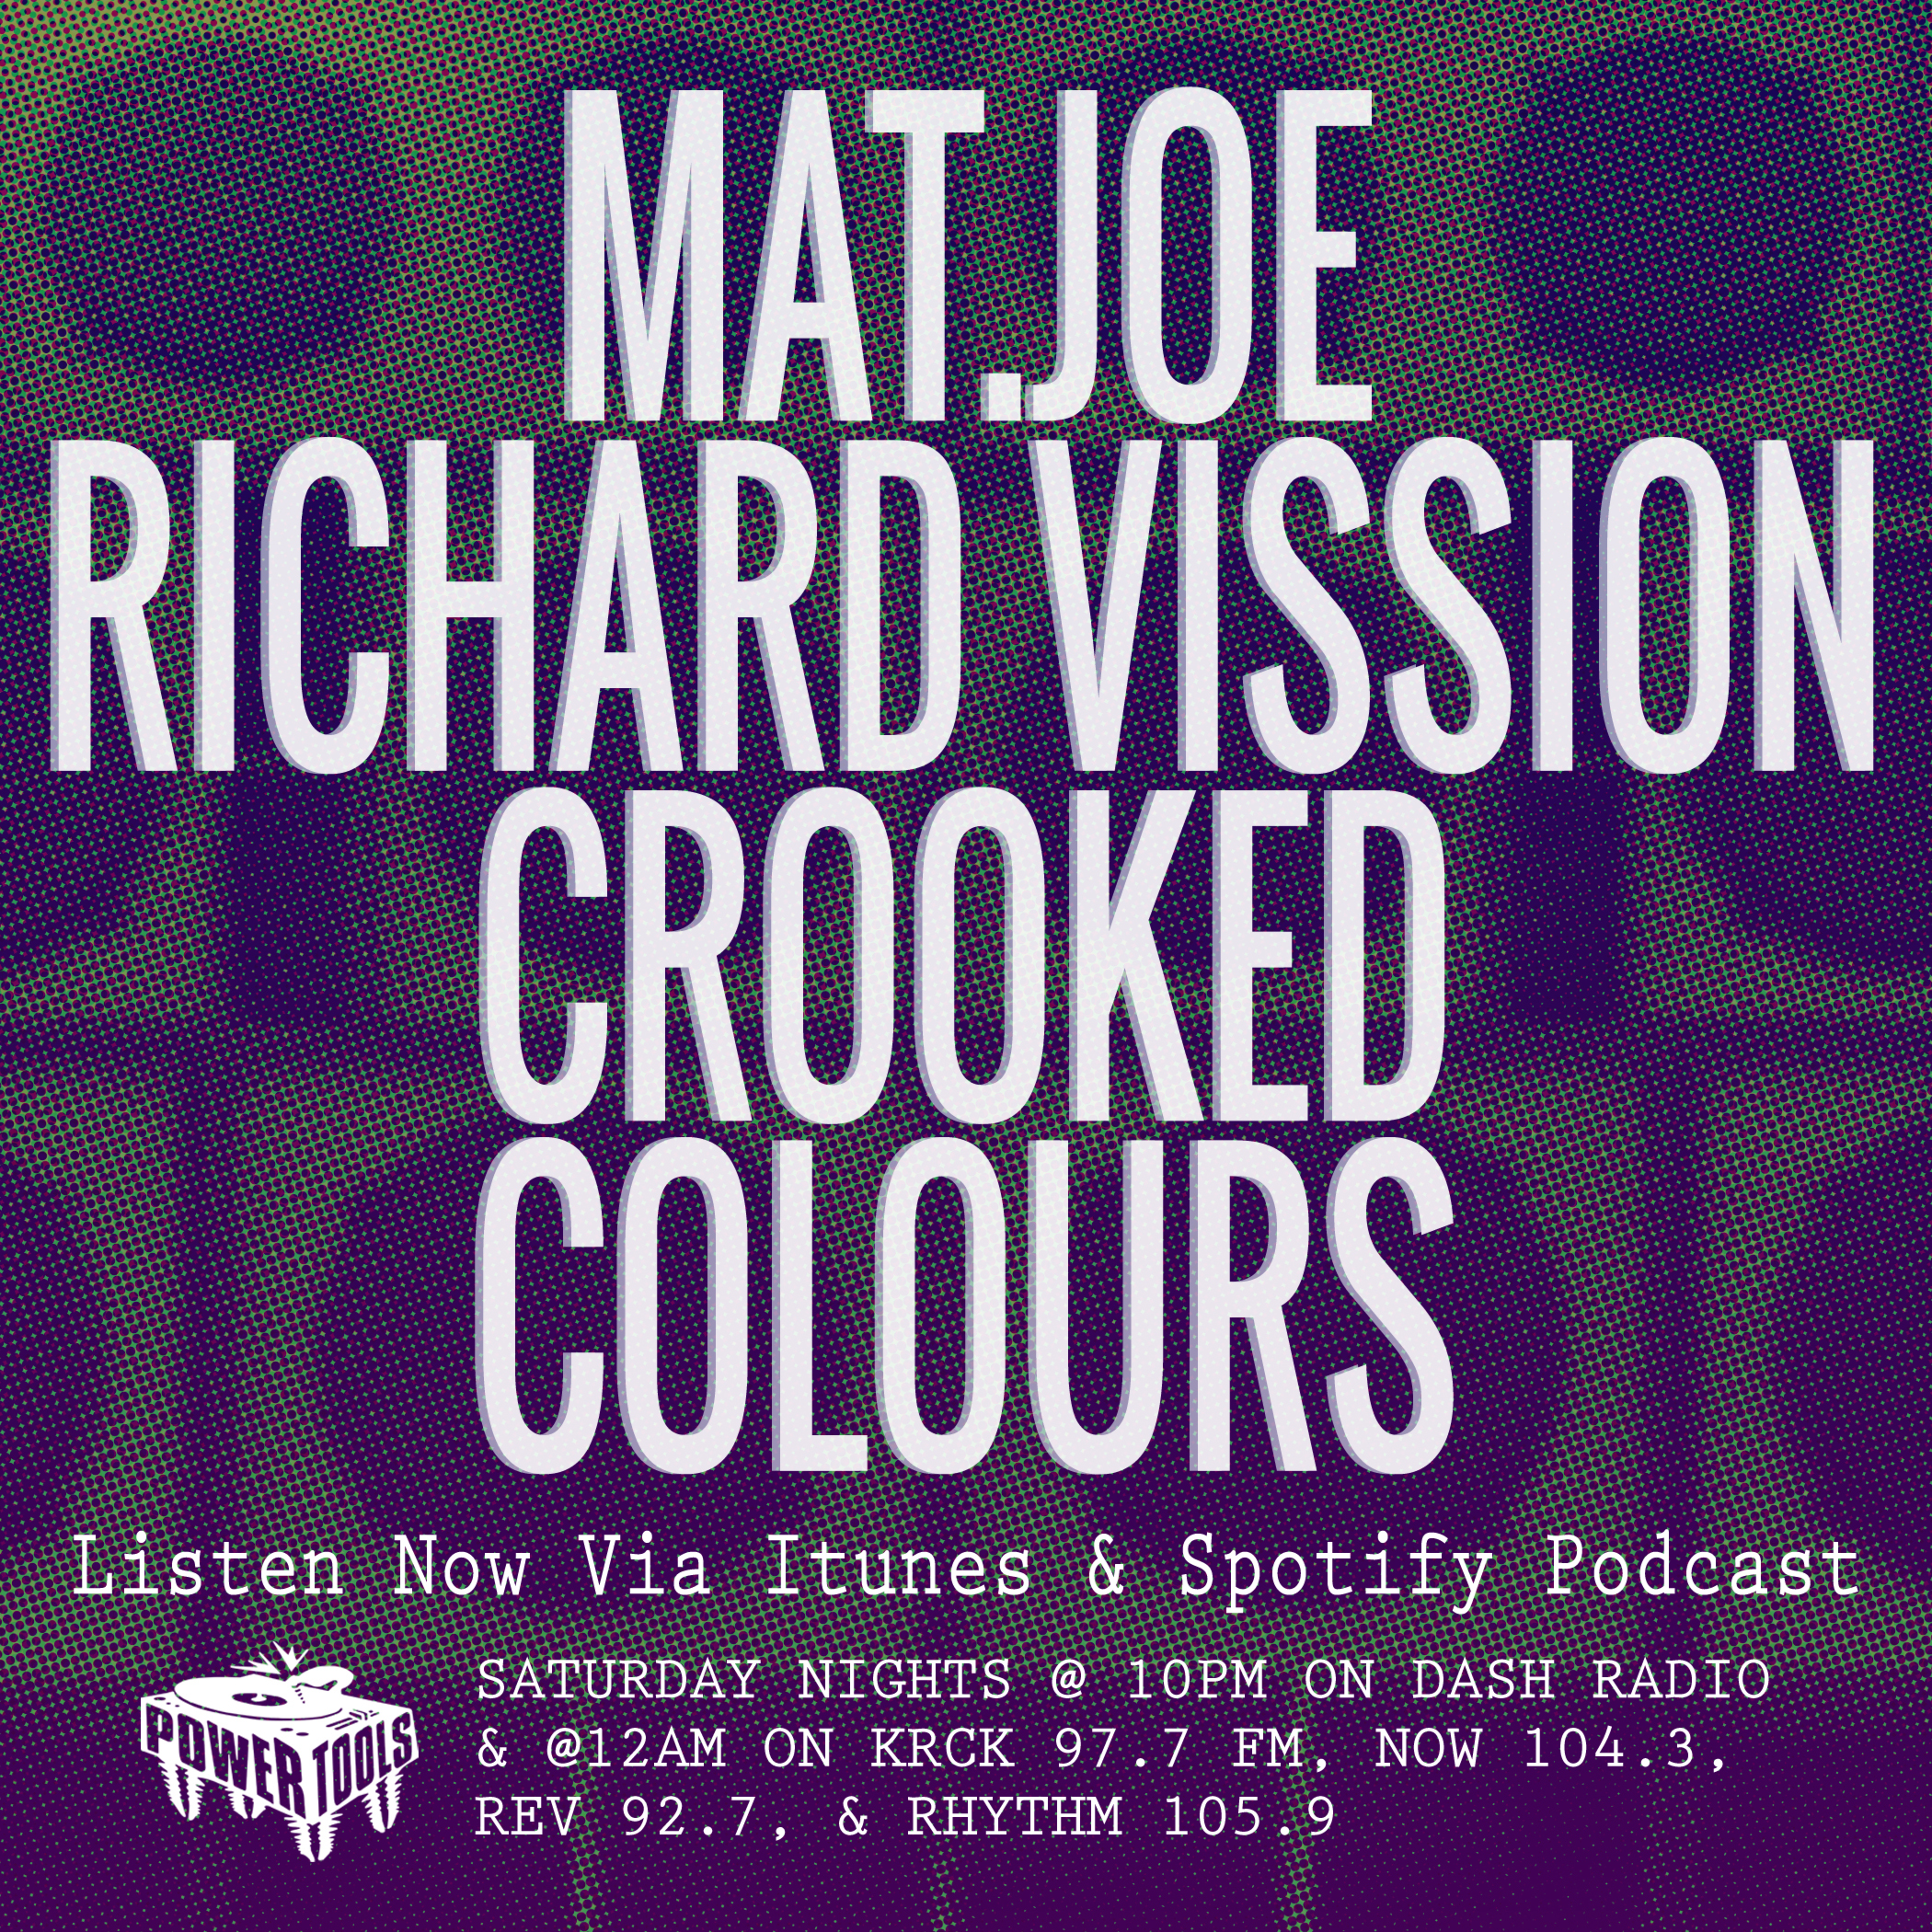 Episode 7-27-19 Ft: Mat Joe, Richard Vission, & Crooked